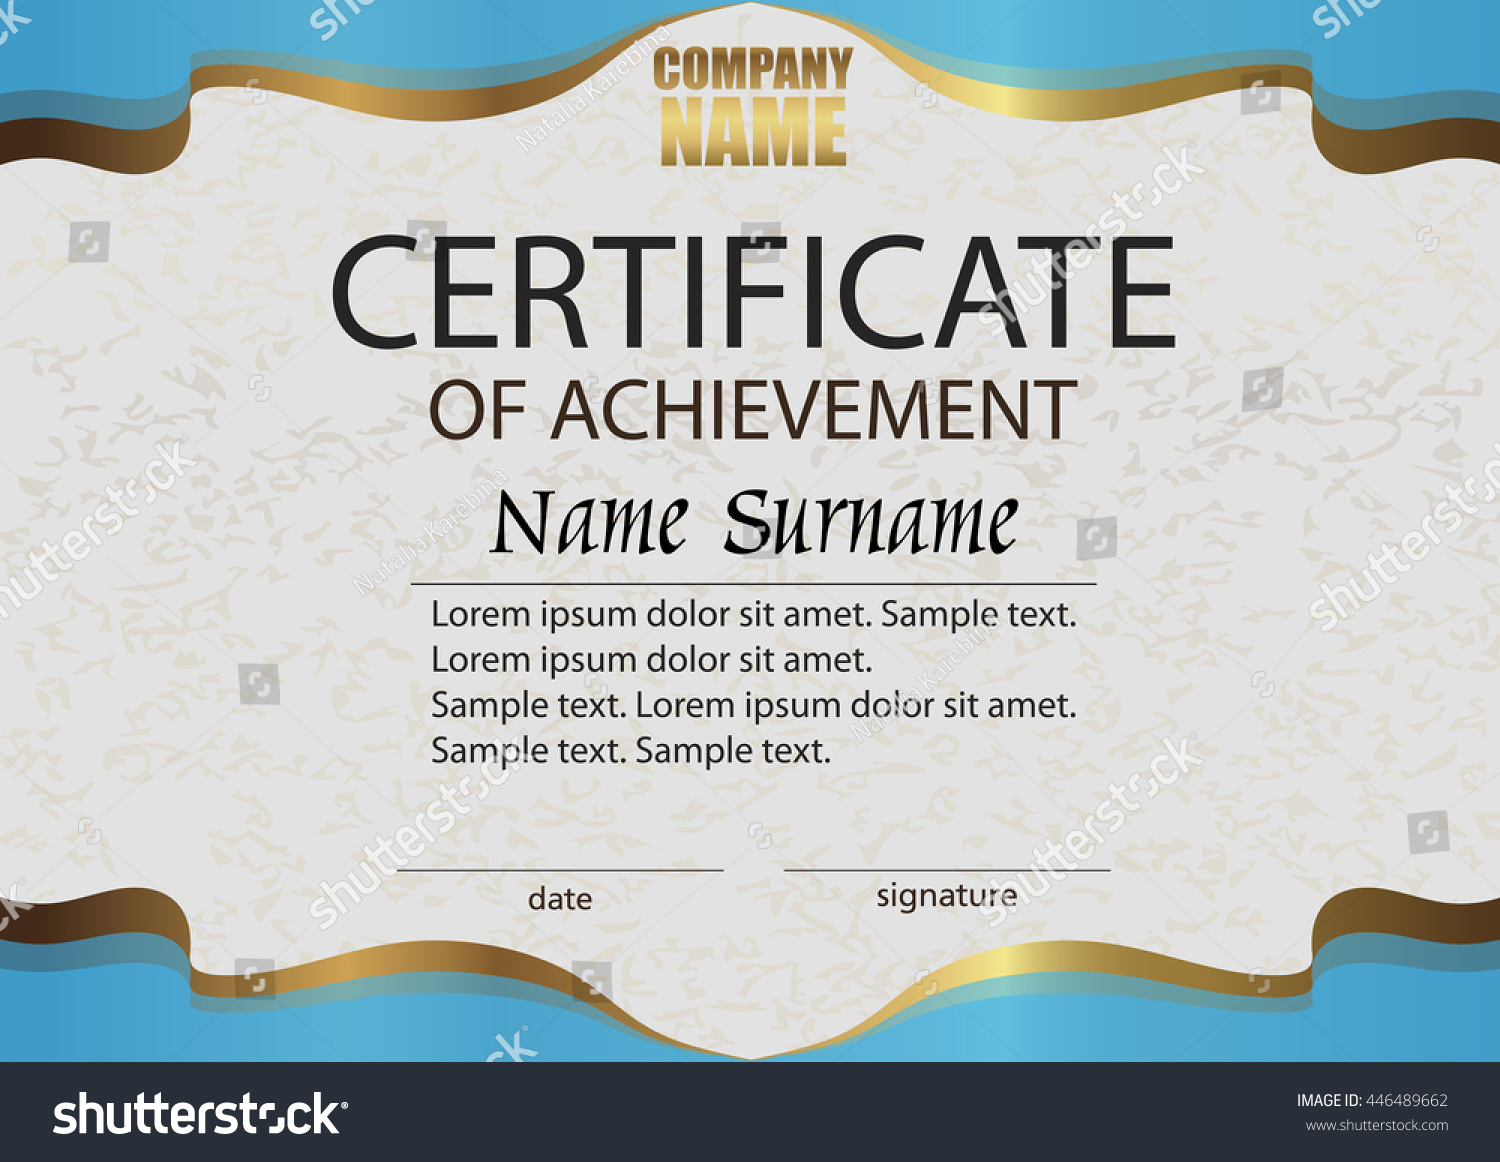 Certificate Of Achievement. Reward. Winning The Competition. Award Winner.  Horizontal Blue With  Certificate Winner